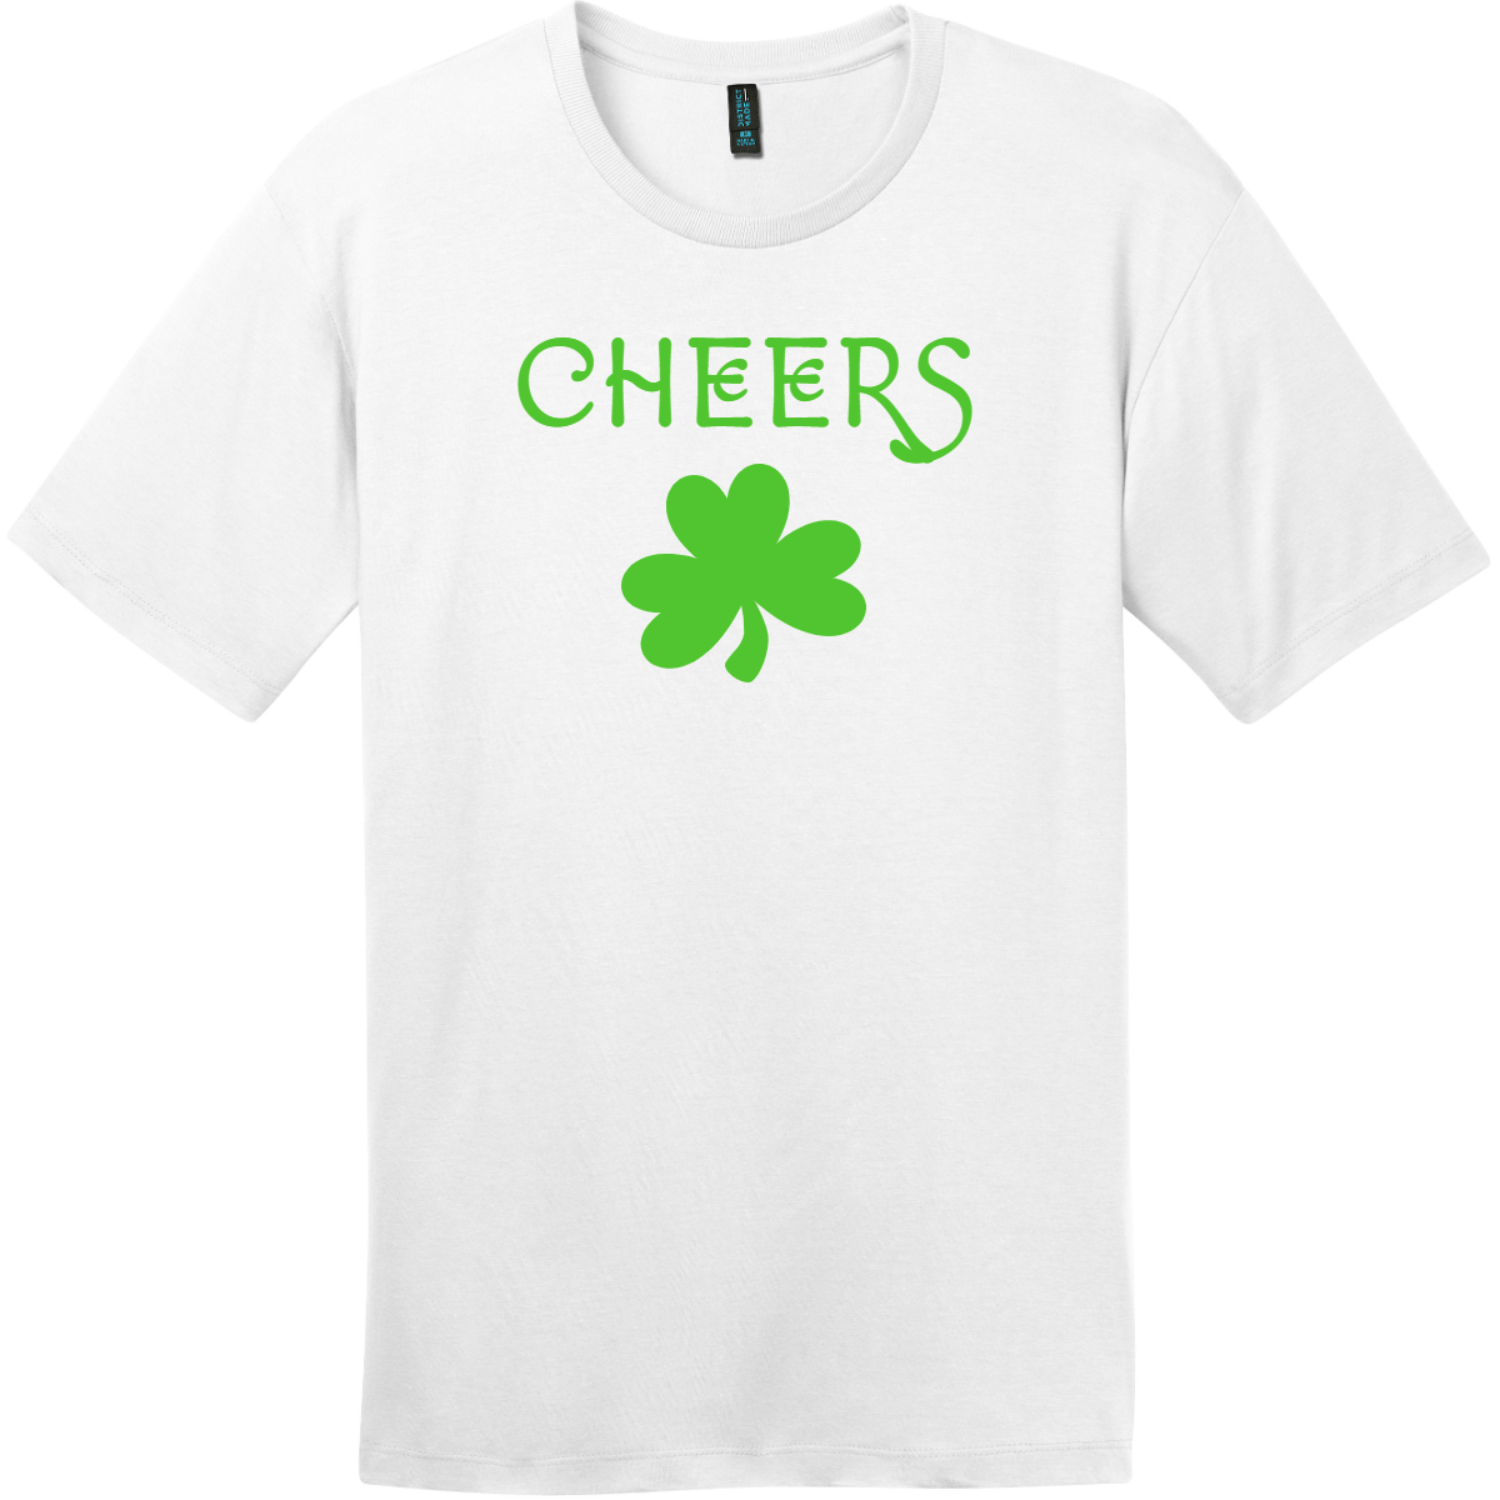 Cheers Shamrock St. Patricks Day T Shirt Bright White District Perfect Weight Tee DT104